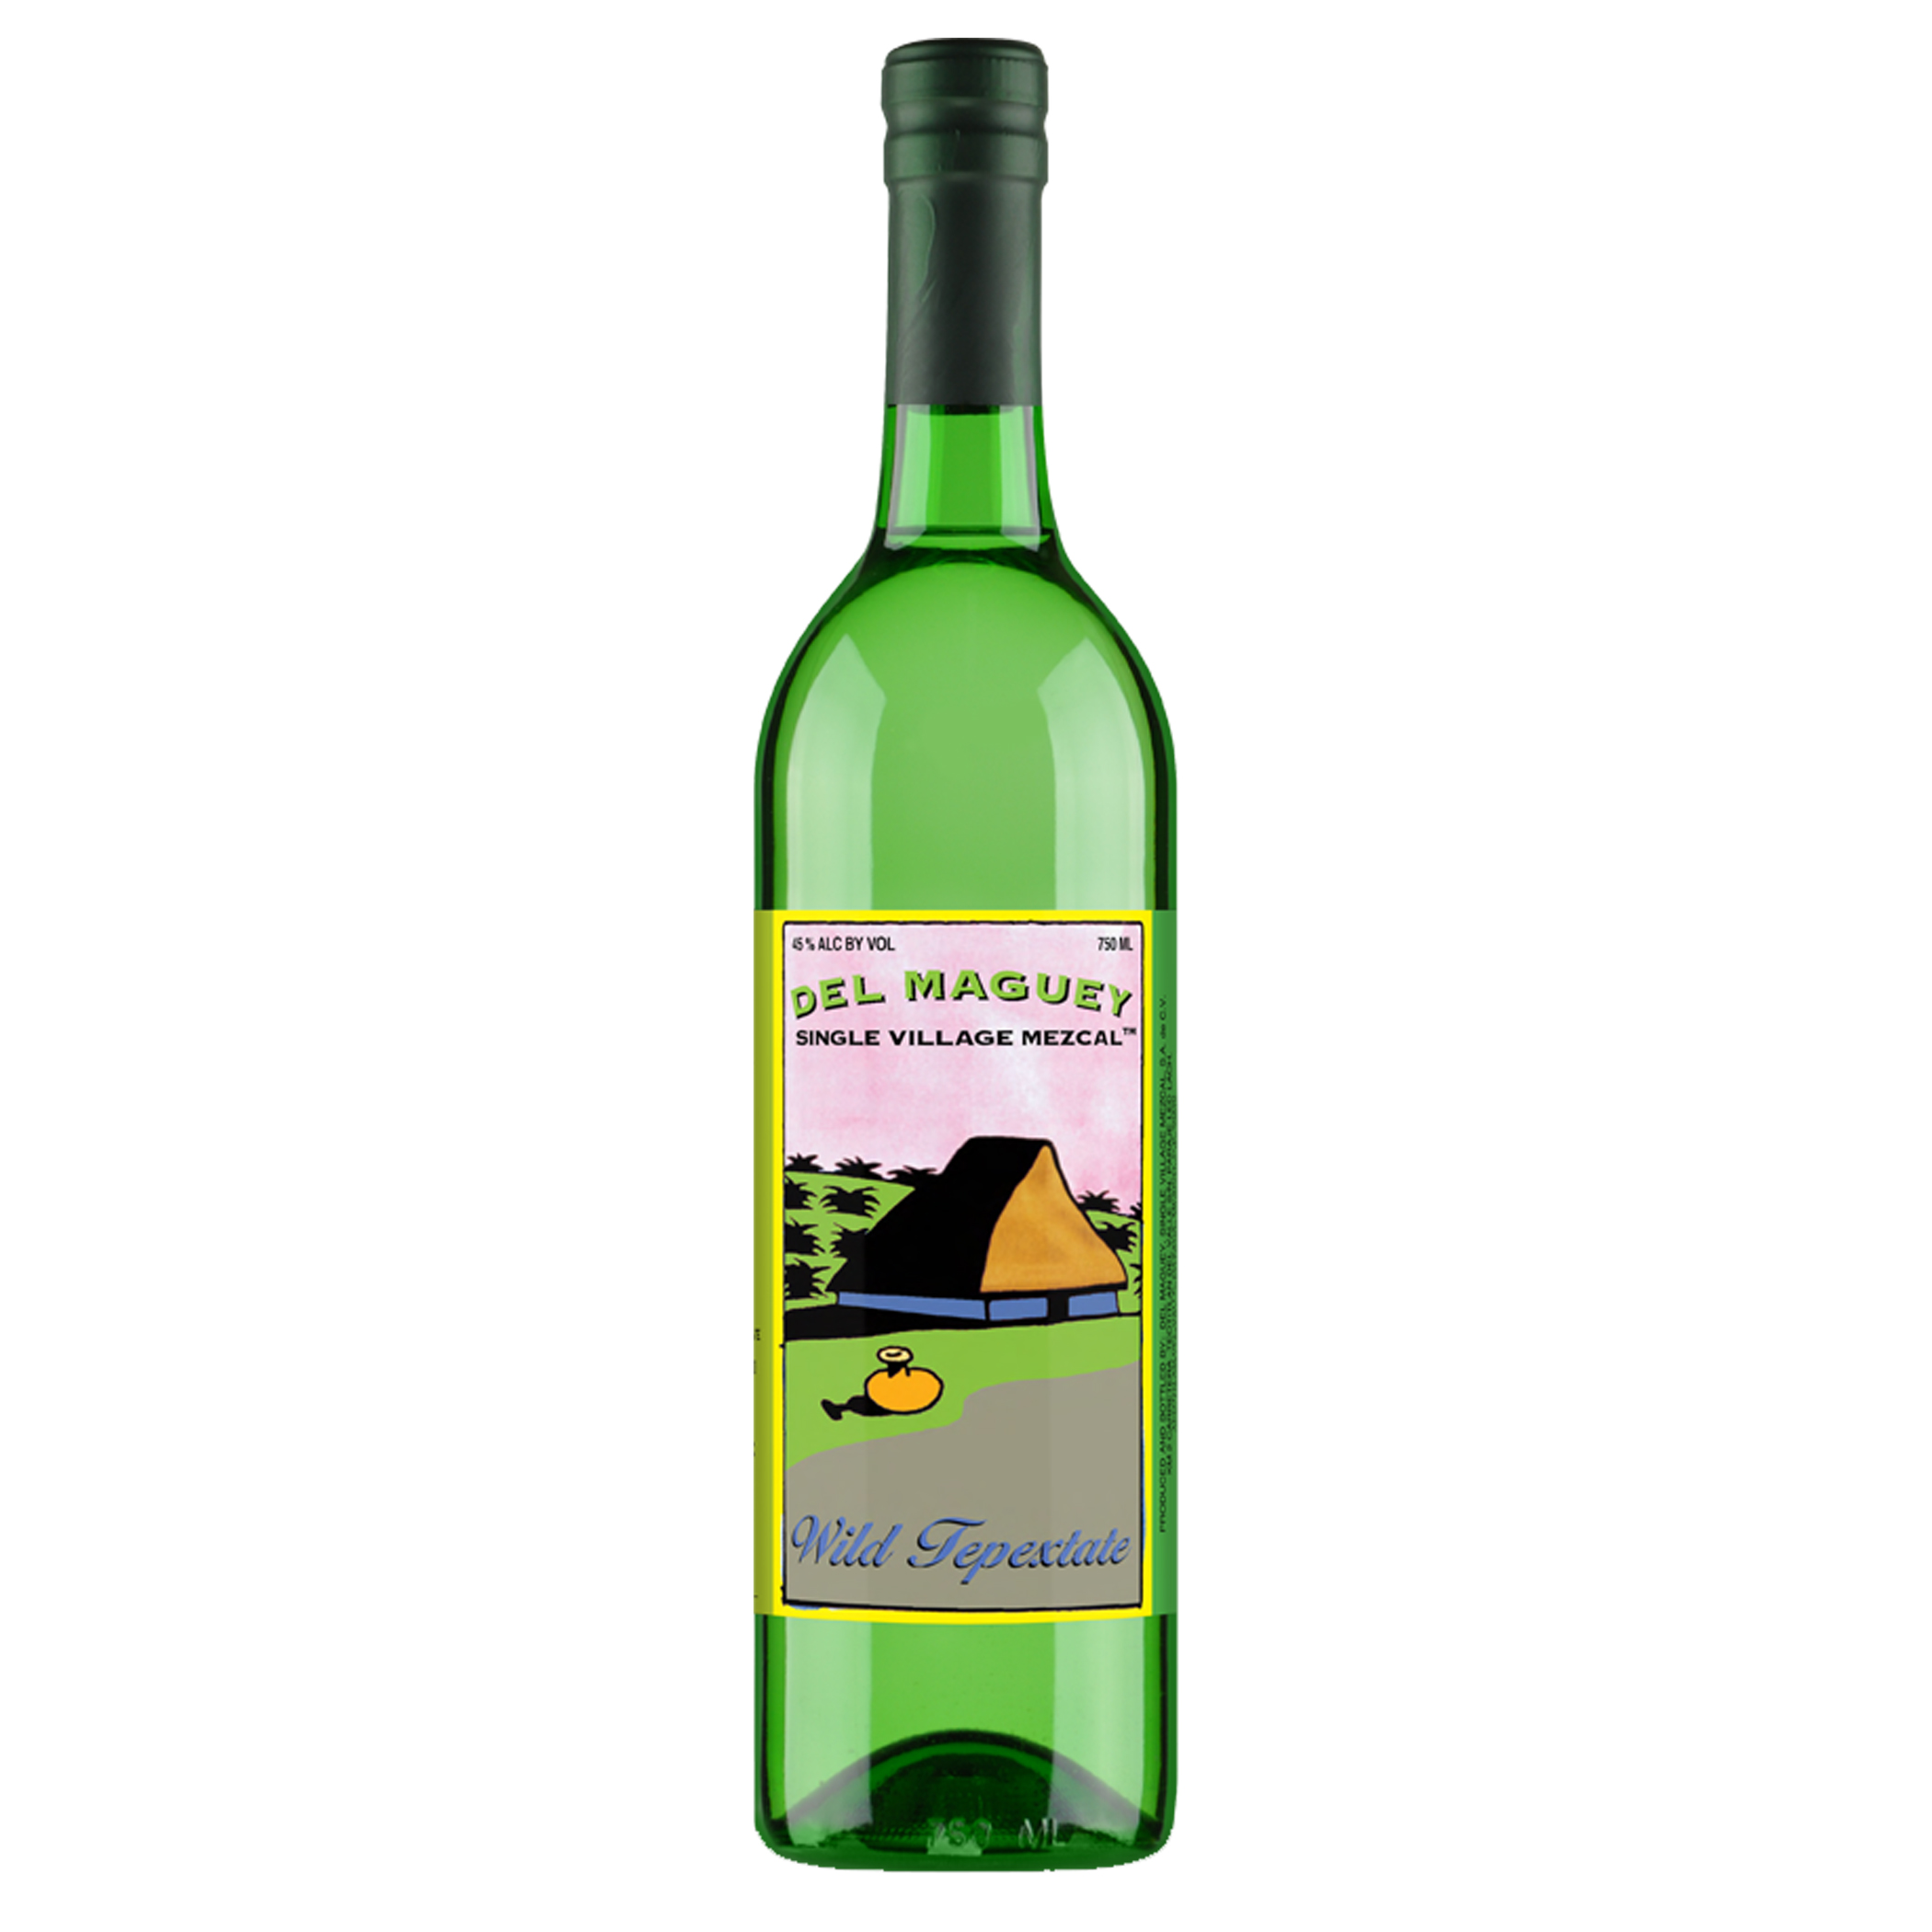 Del Maguey Tepextate